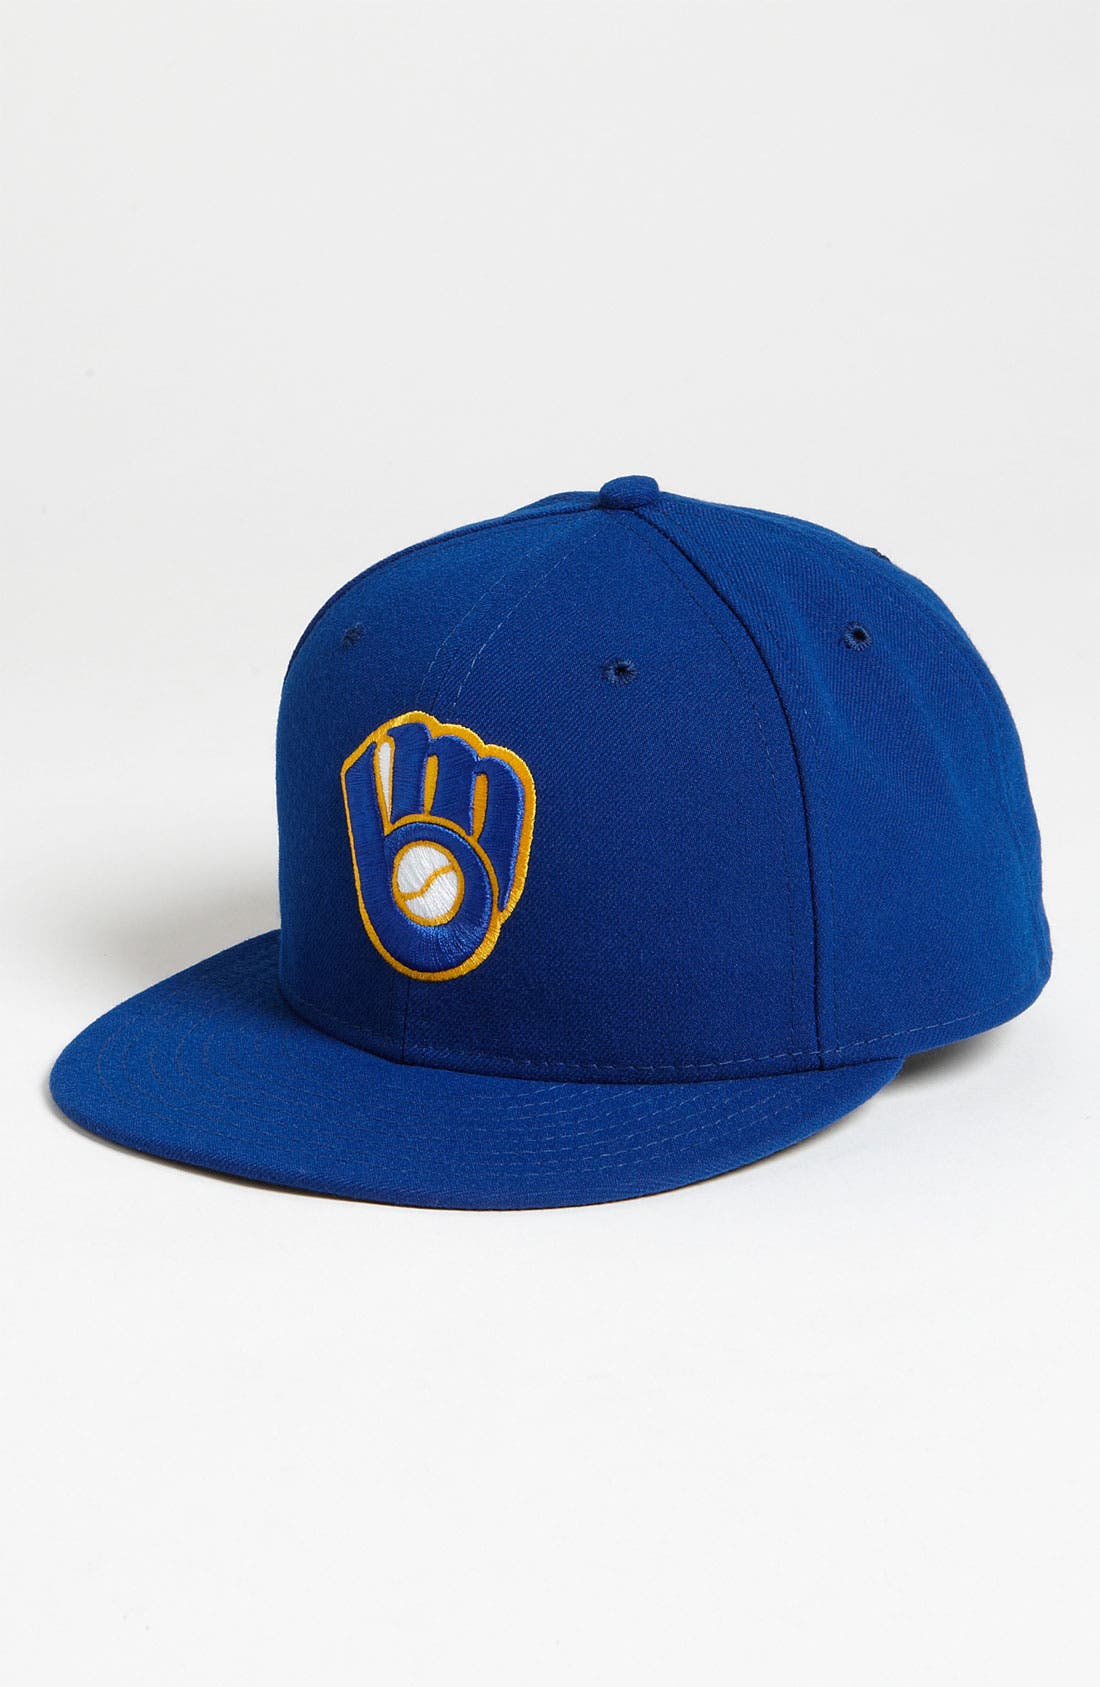 Main Image - New Era Cap 'Milwaukee Brewers' Baseball Cap